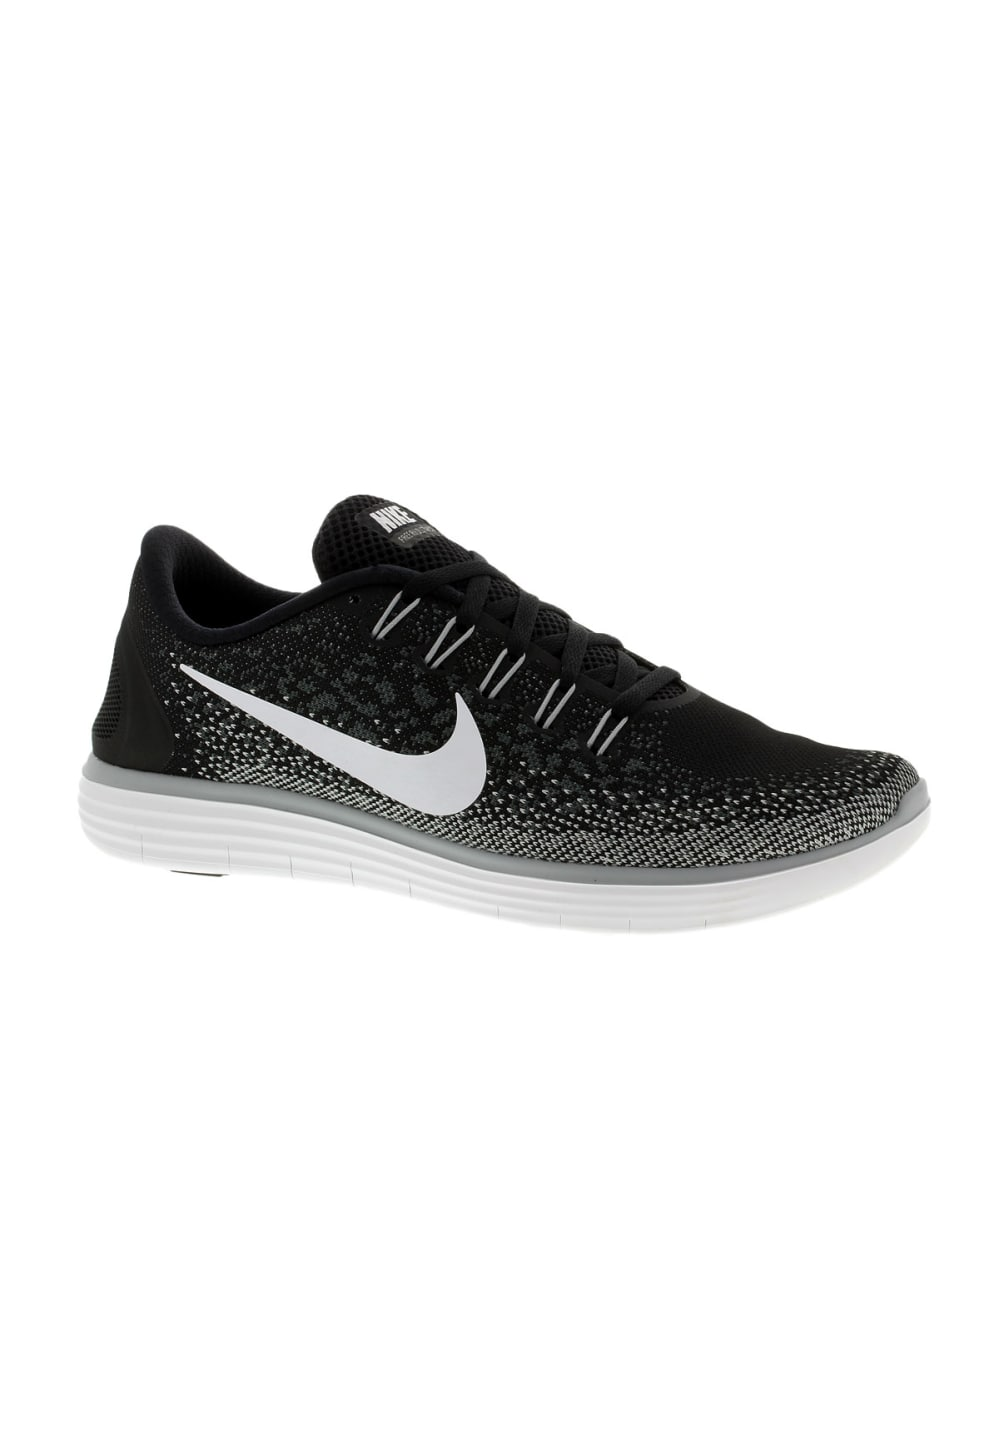 cheap for discount 3c40b ae7a2 Next. -70%. Nike. Free Run Distance ...